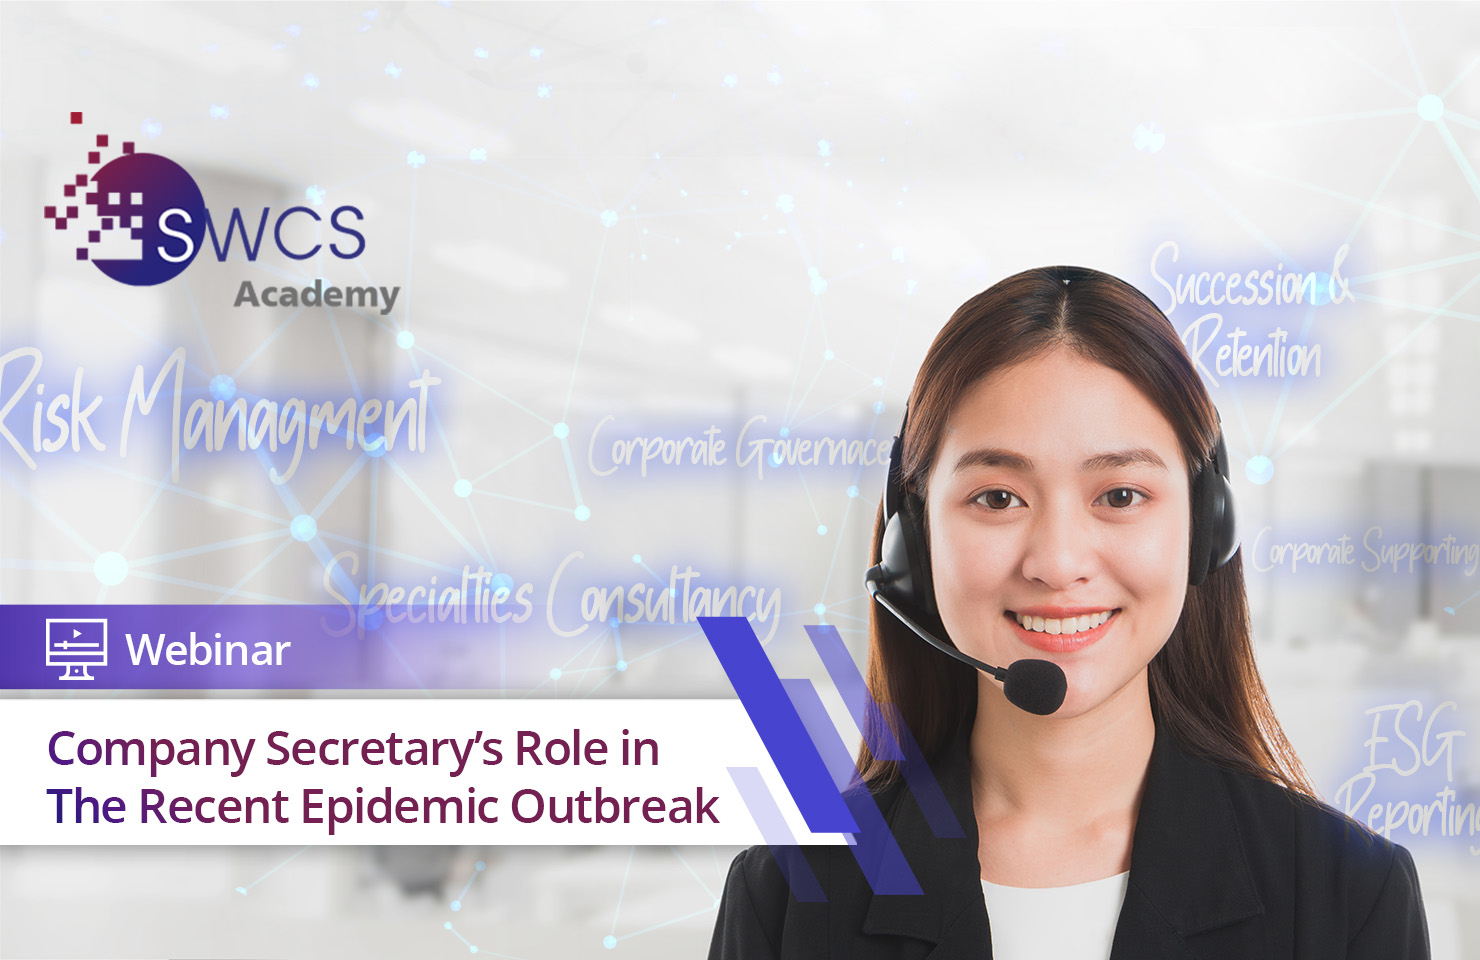 Company Secretary's Role in The Recent Epidemic Outbreak